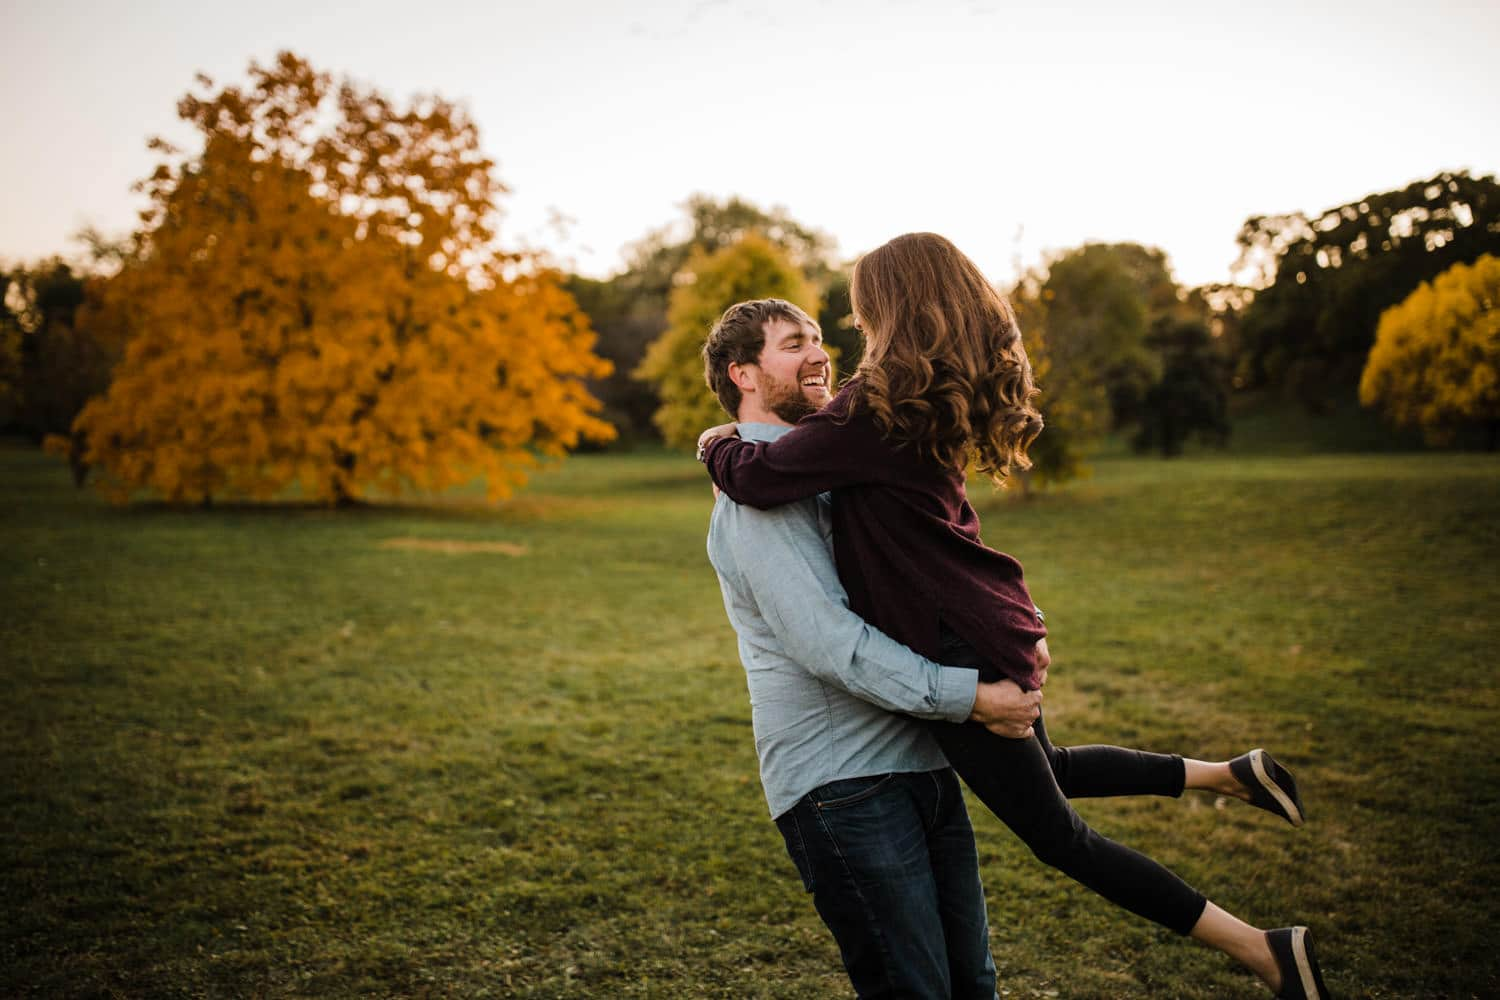 couple spin together outside in a park - ottawa fall engagement